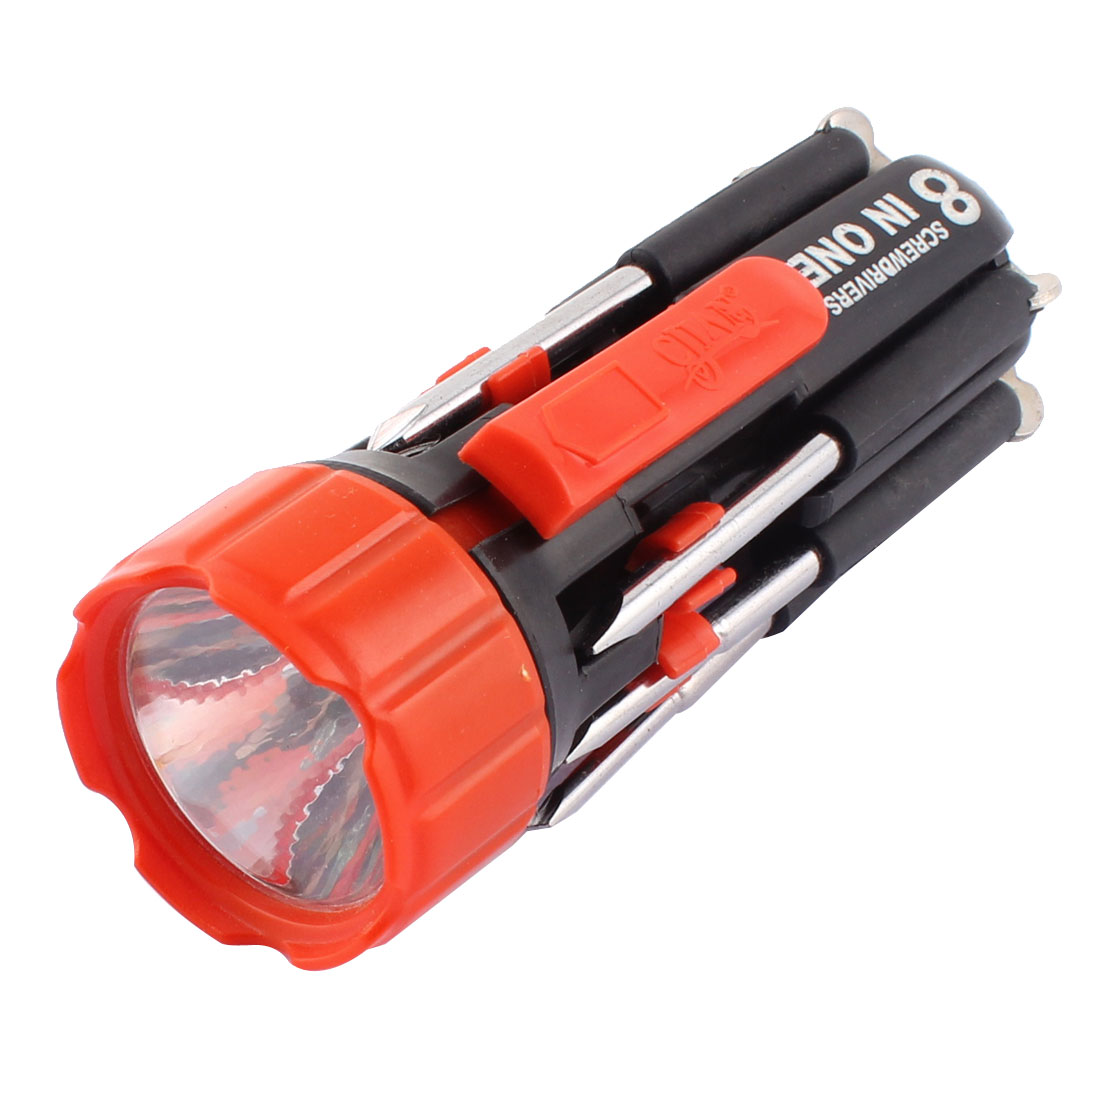 Multi Screwdriver Phillips Slotted Round Bit LED Flashlight Torch